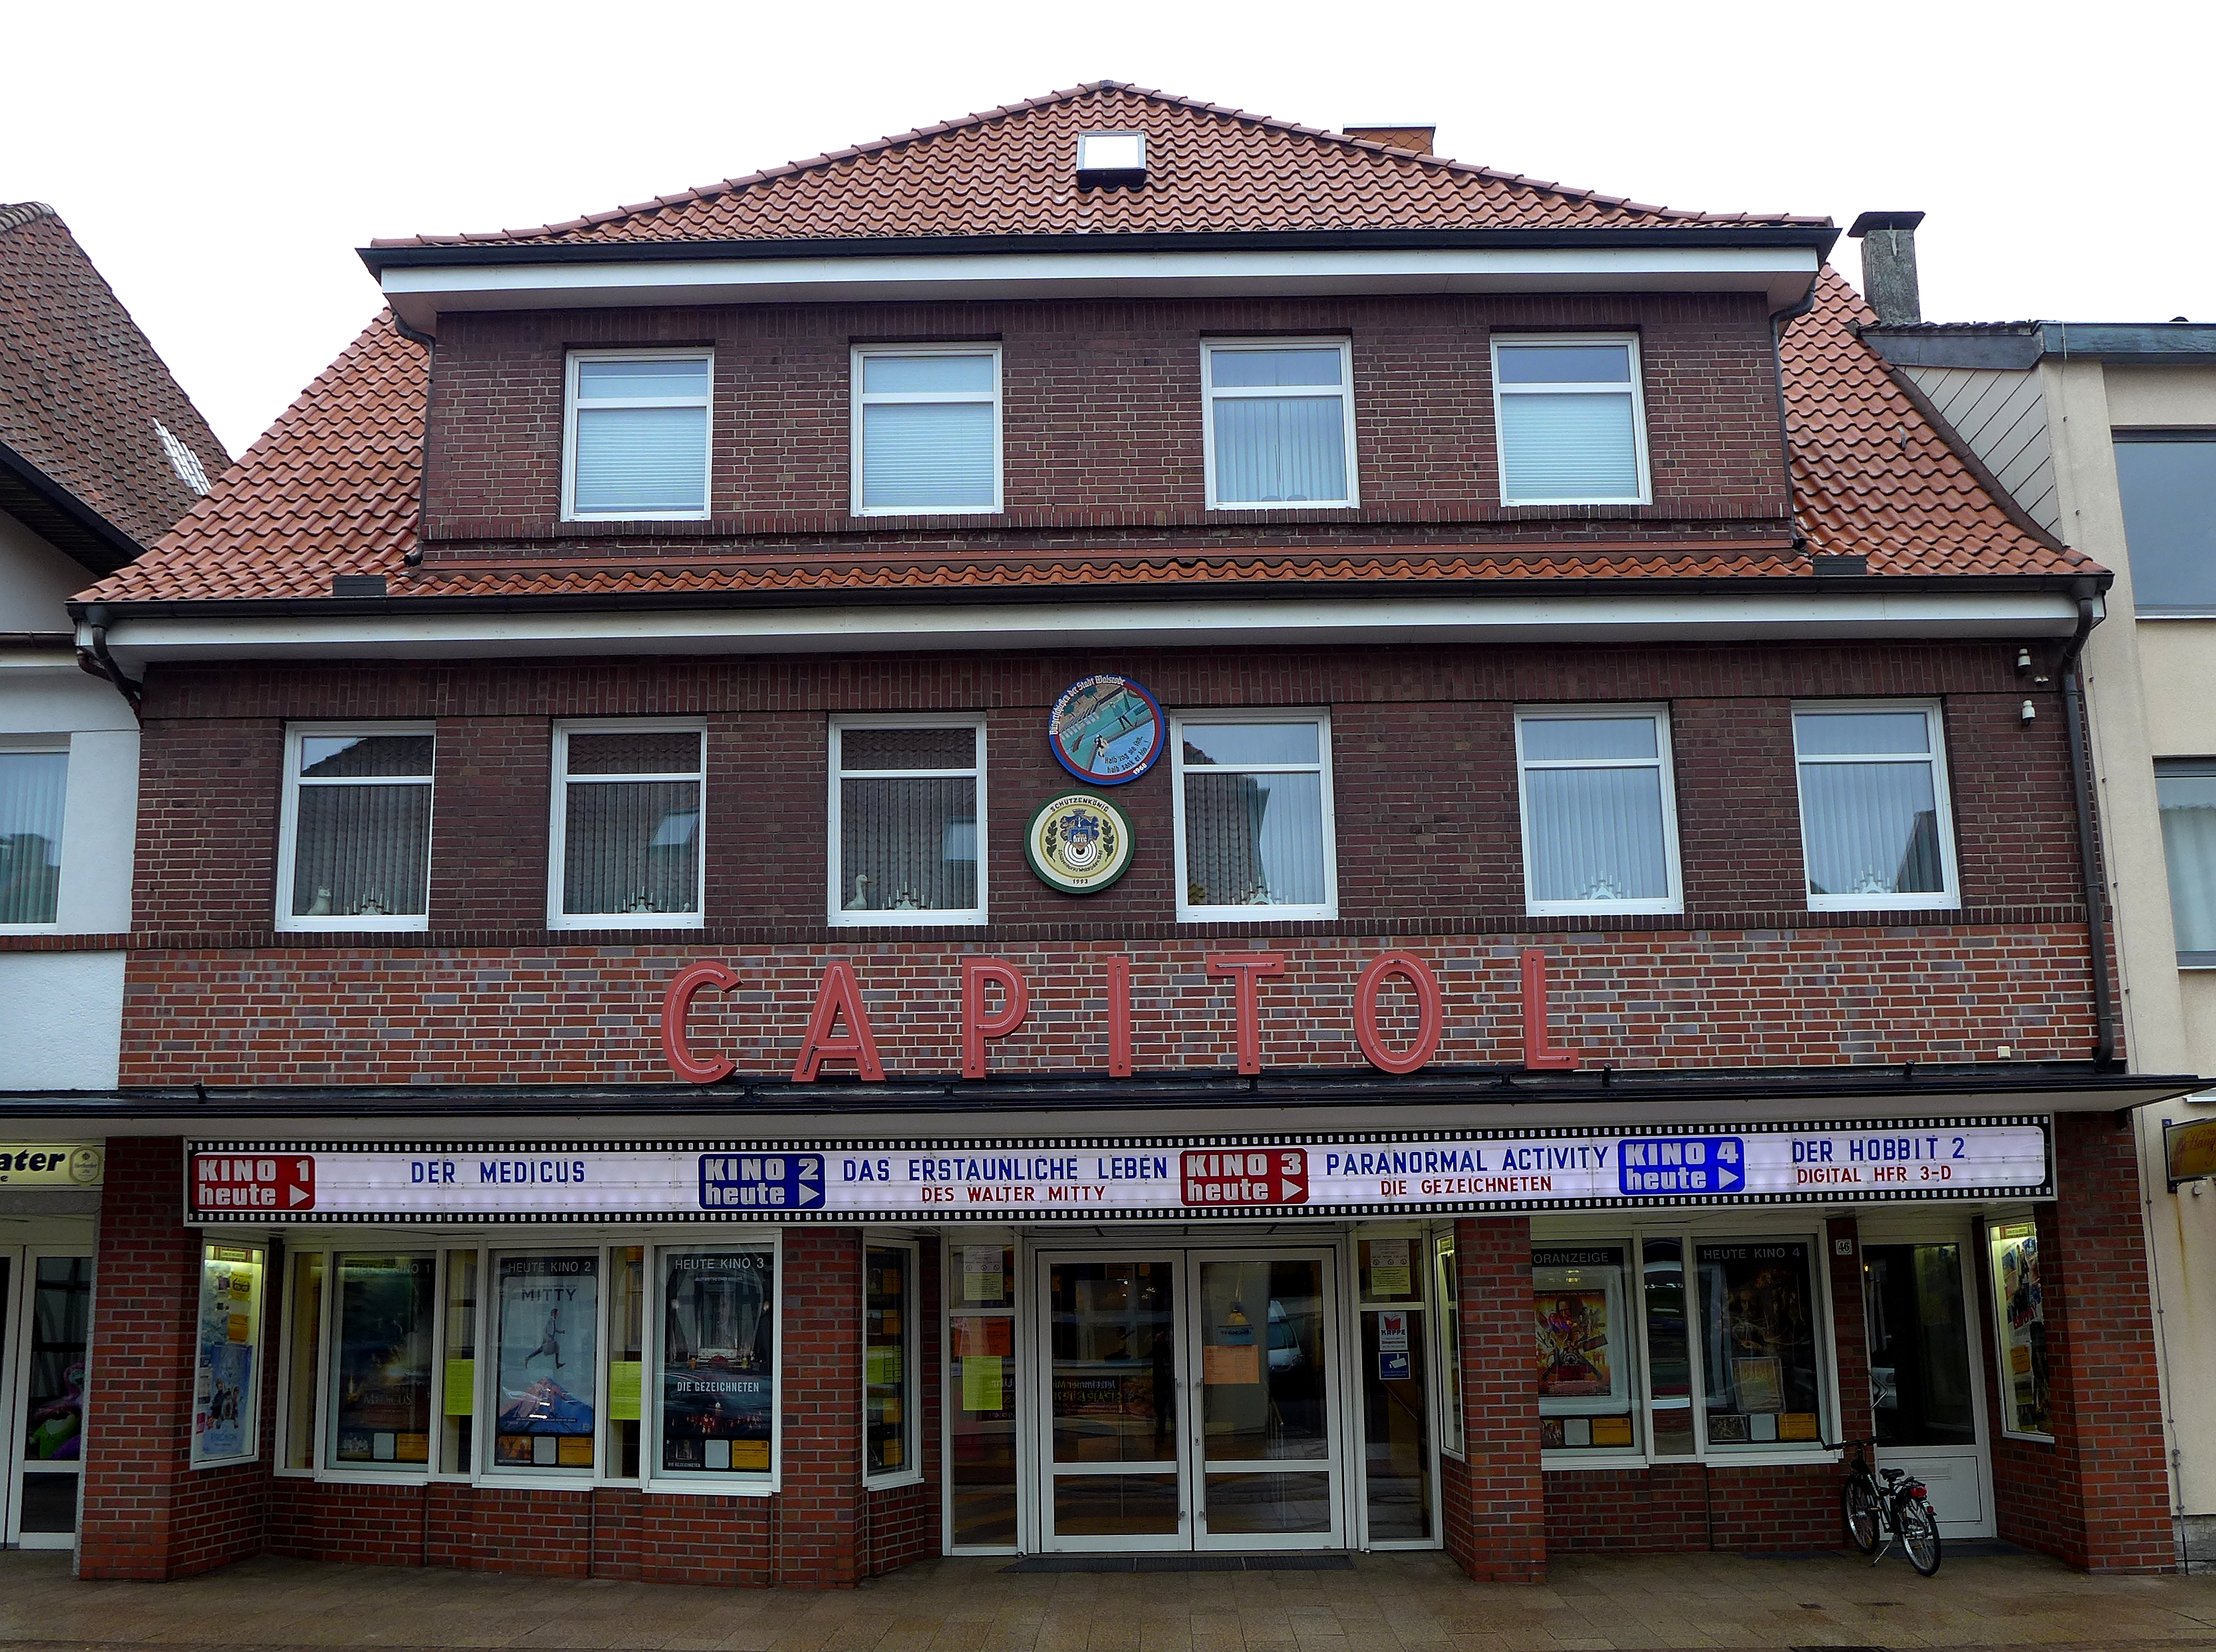 Capitol-Theater Walsrode